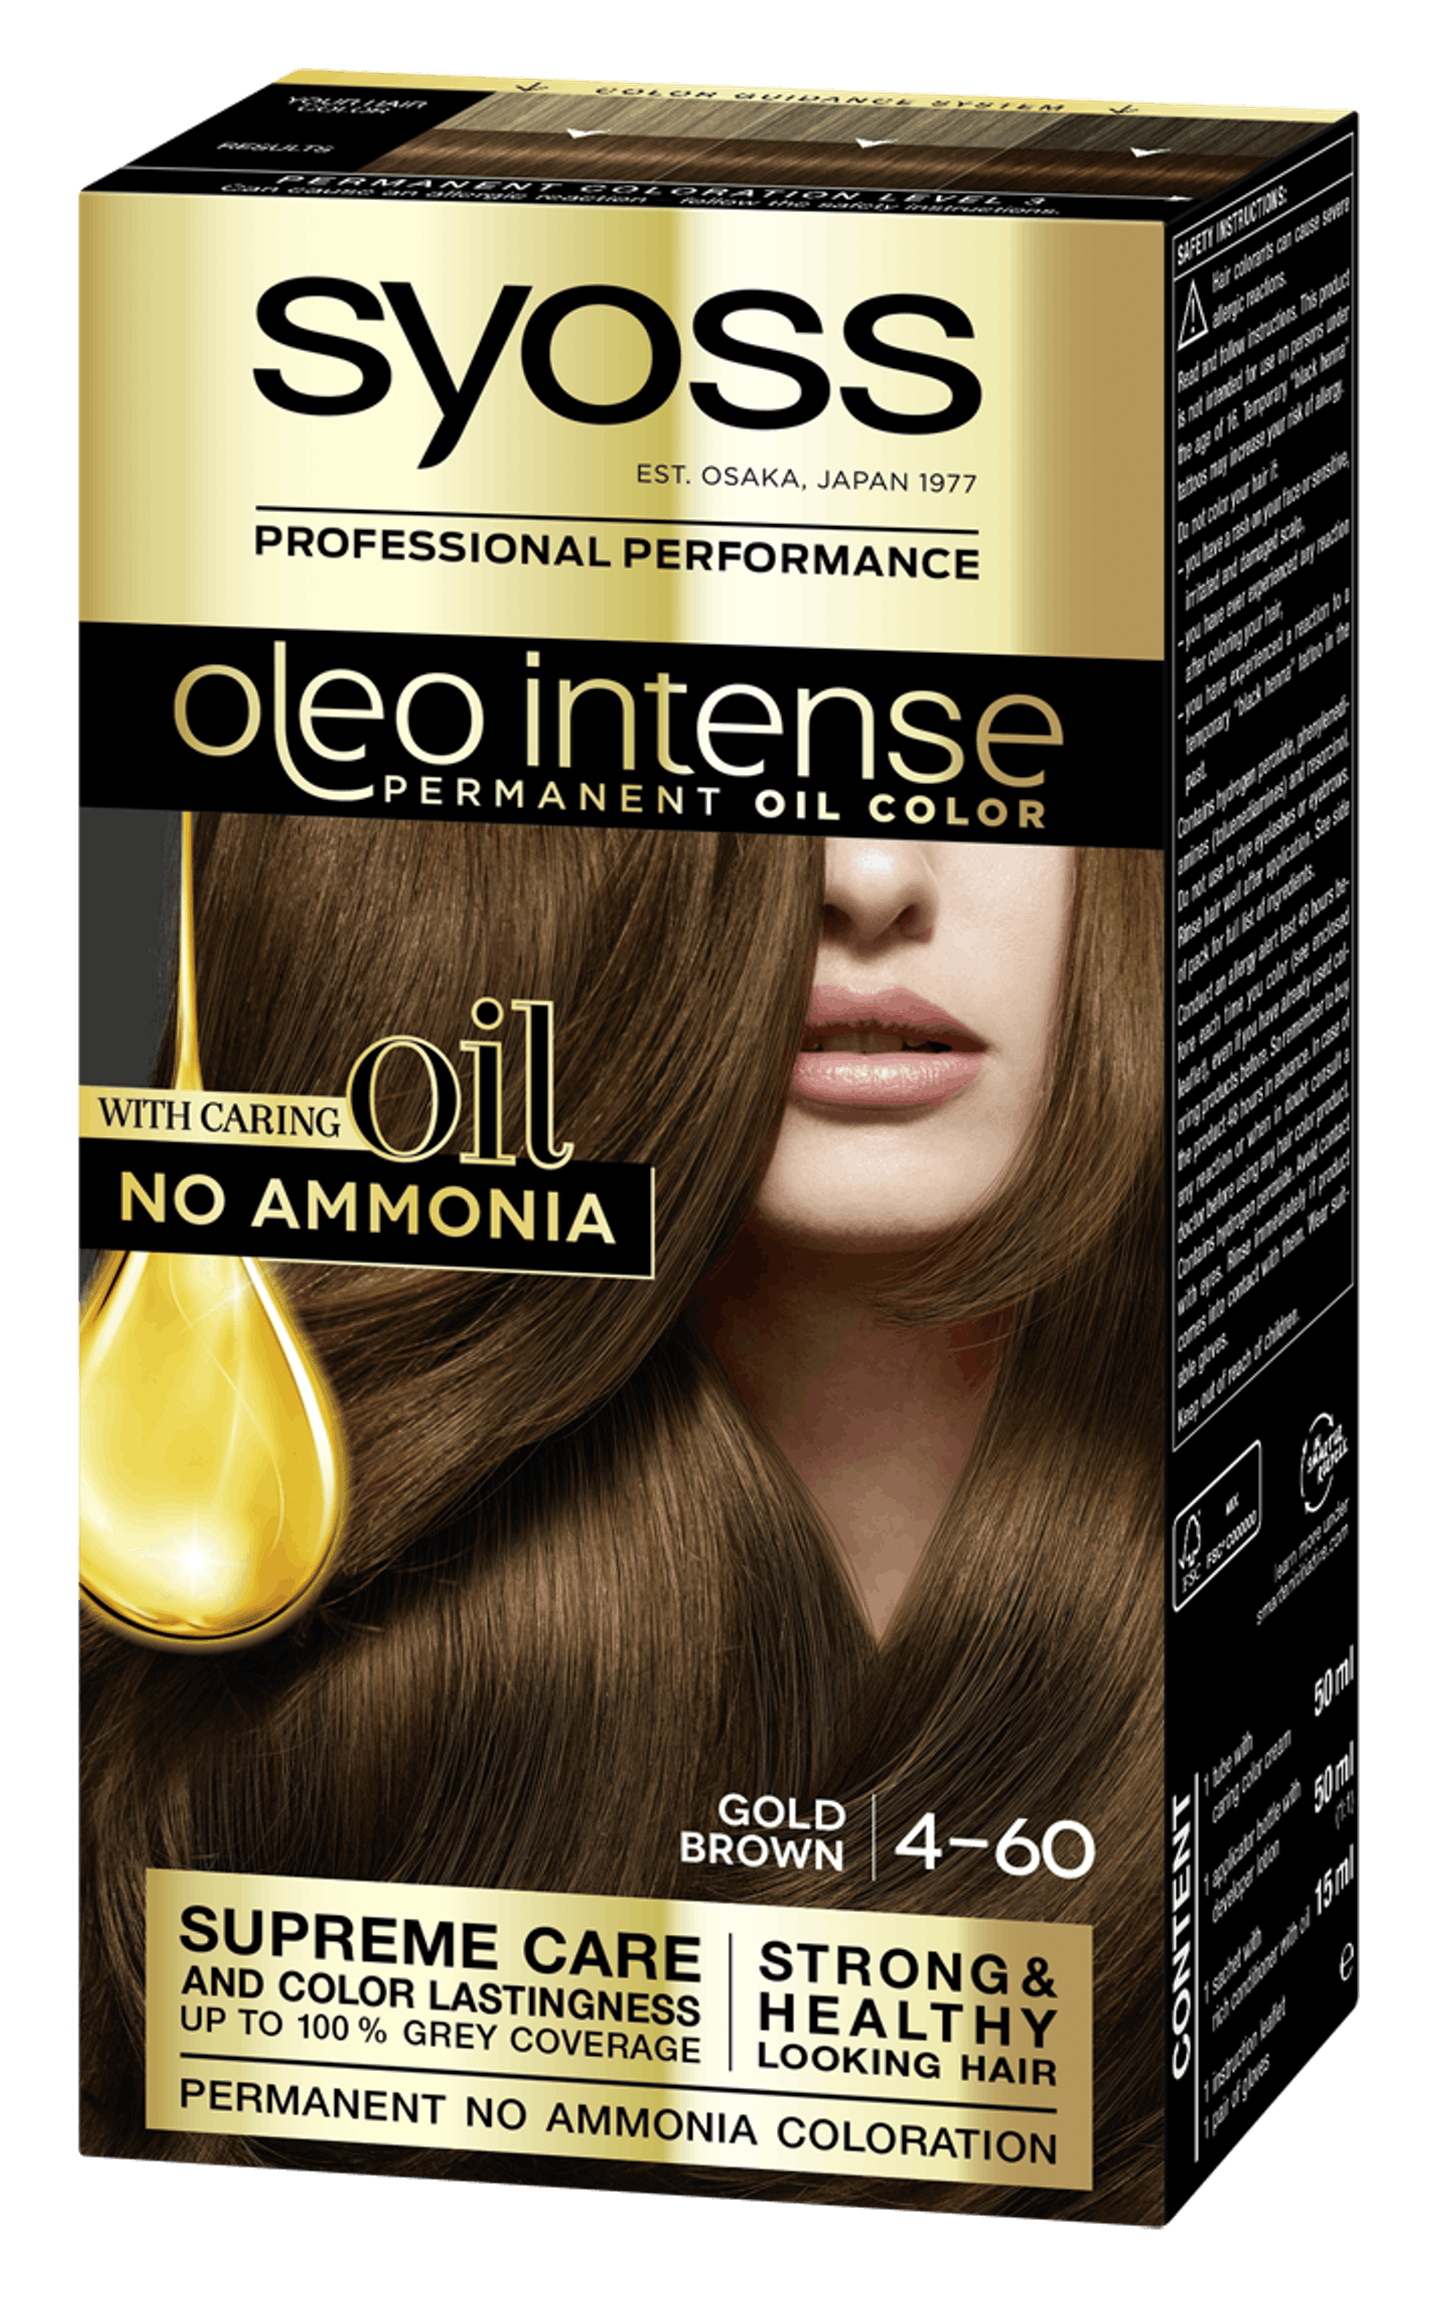 Syoss Oleo Intense Permanent Oil Color 4-60 Gold Brown